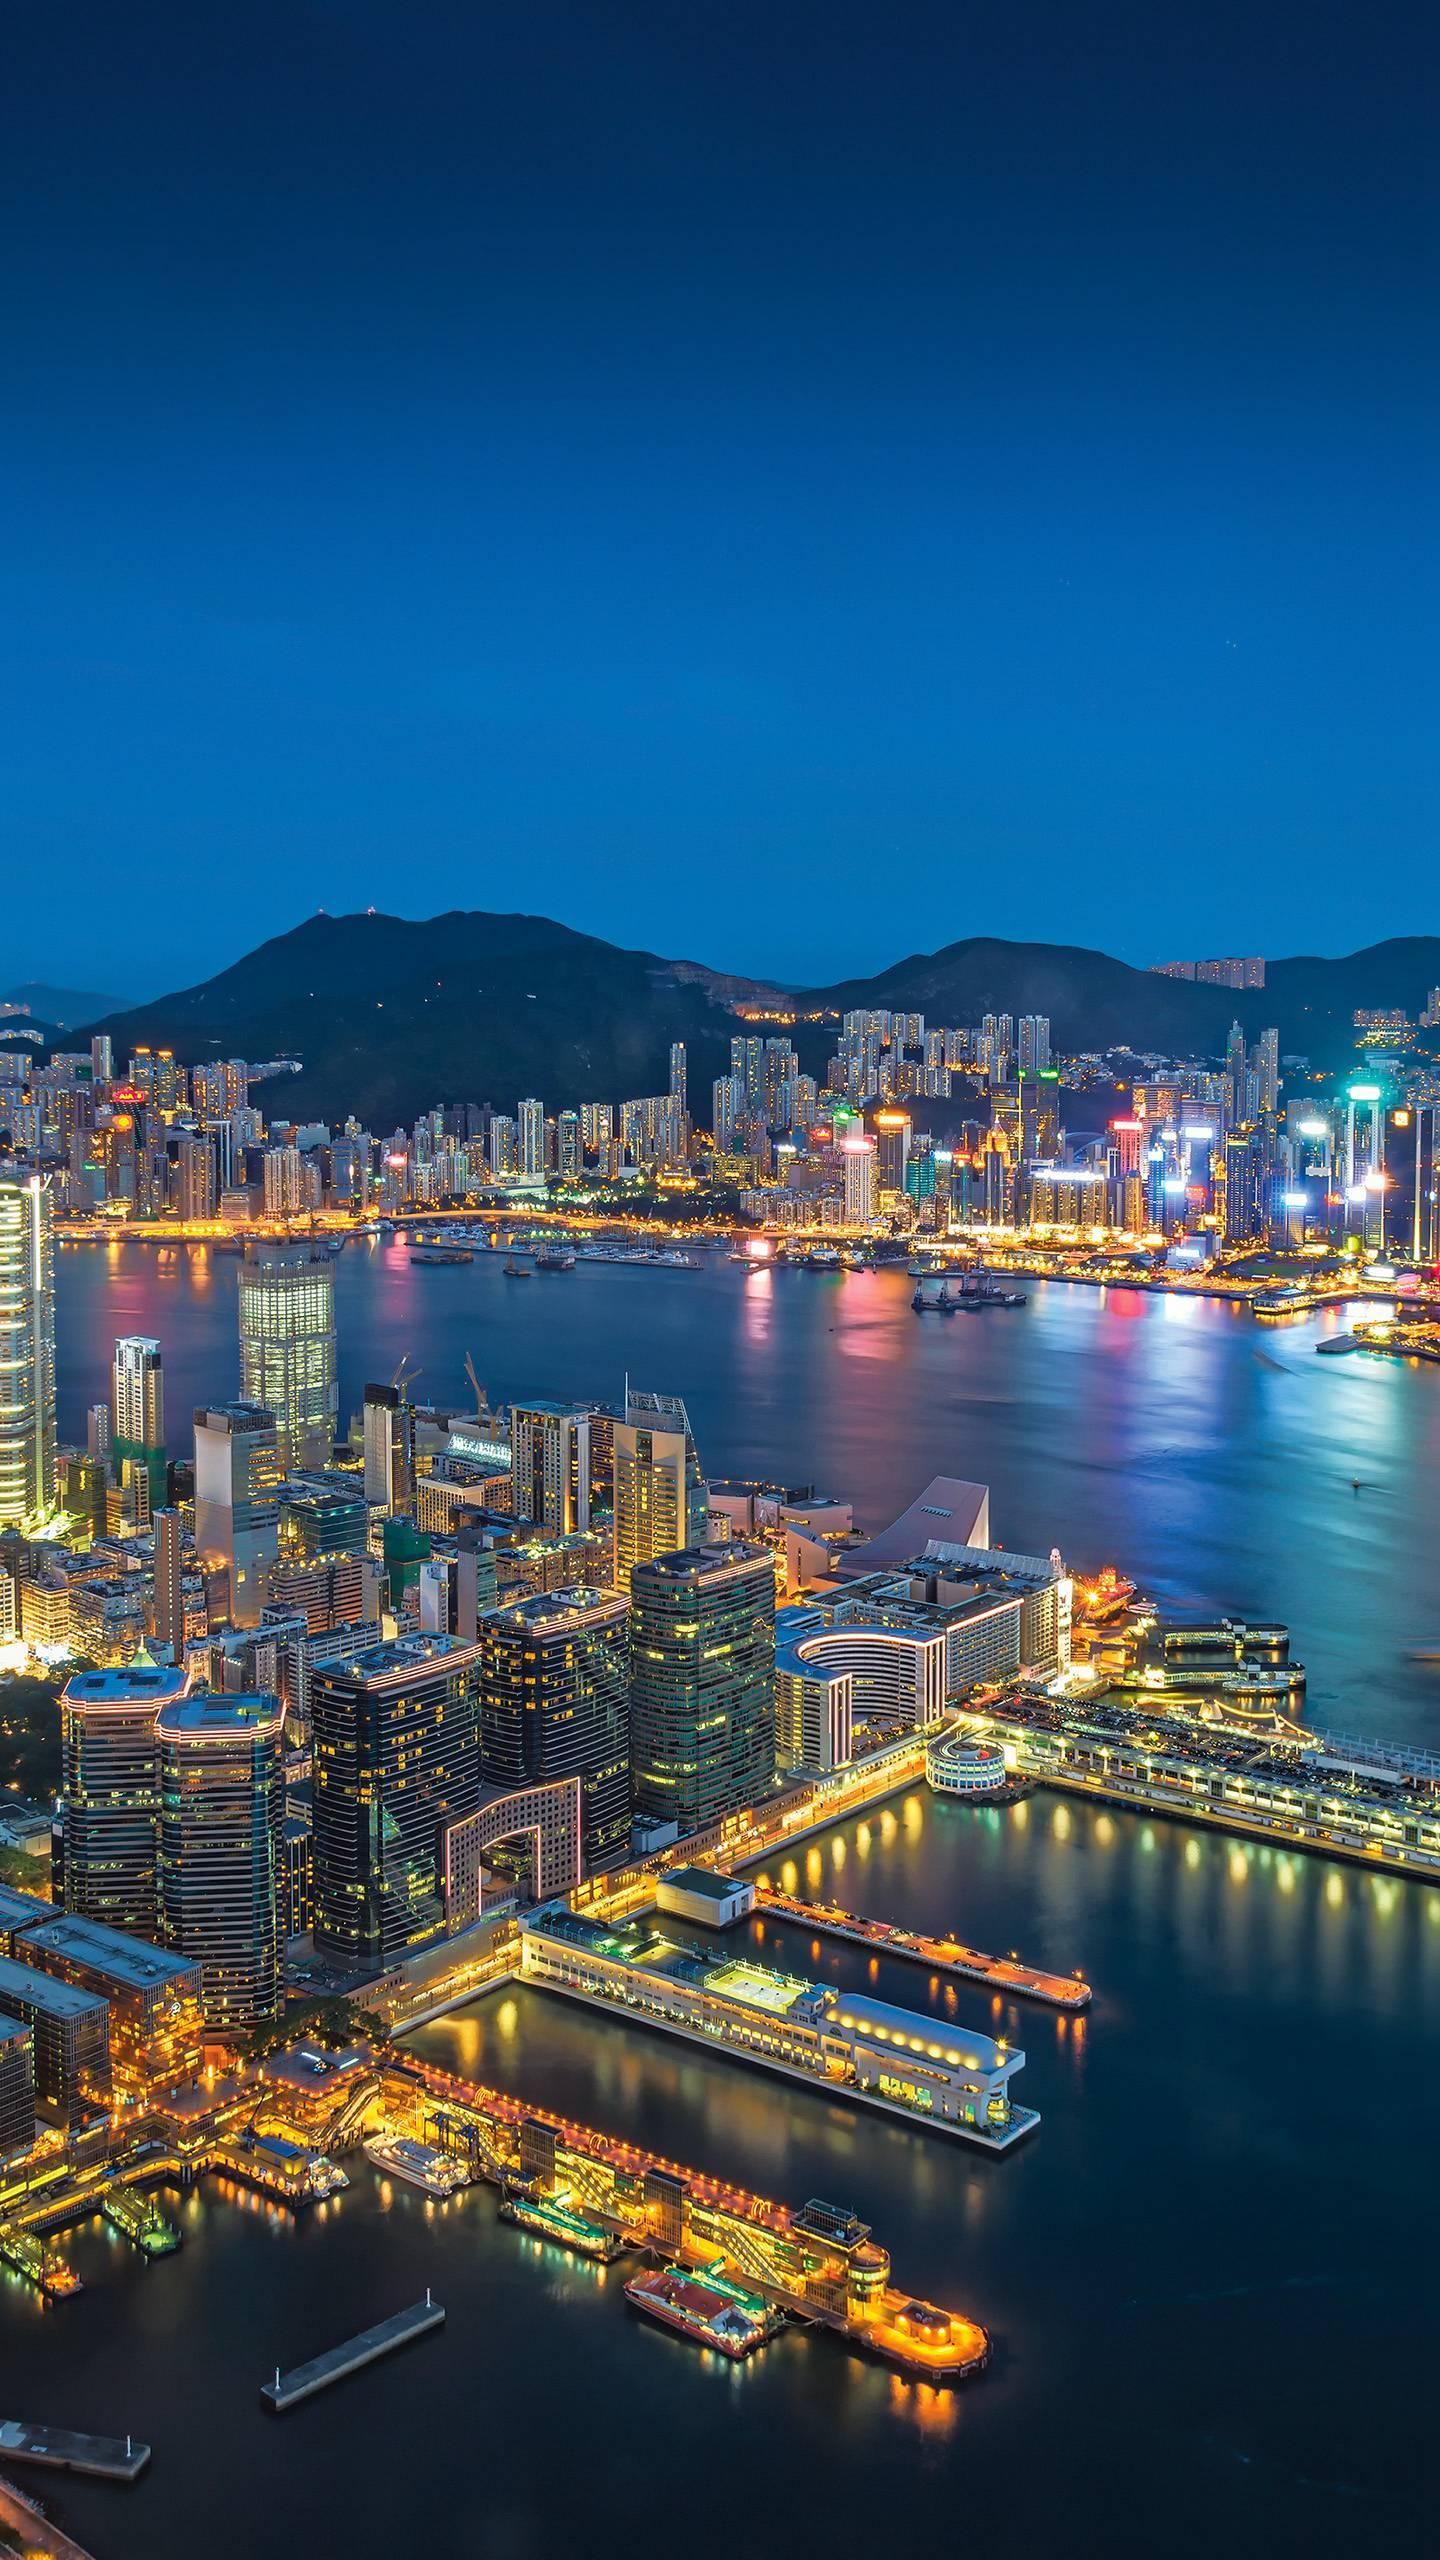 The must-see attractions in Hong Kong. To travel to Hong Kong, these 6 iconic places are not to be missed.